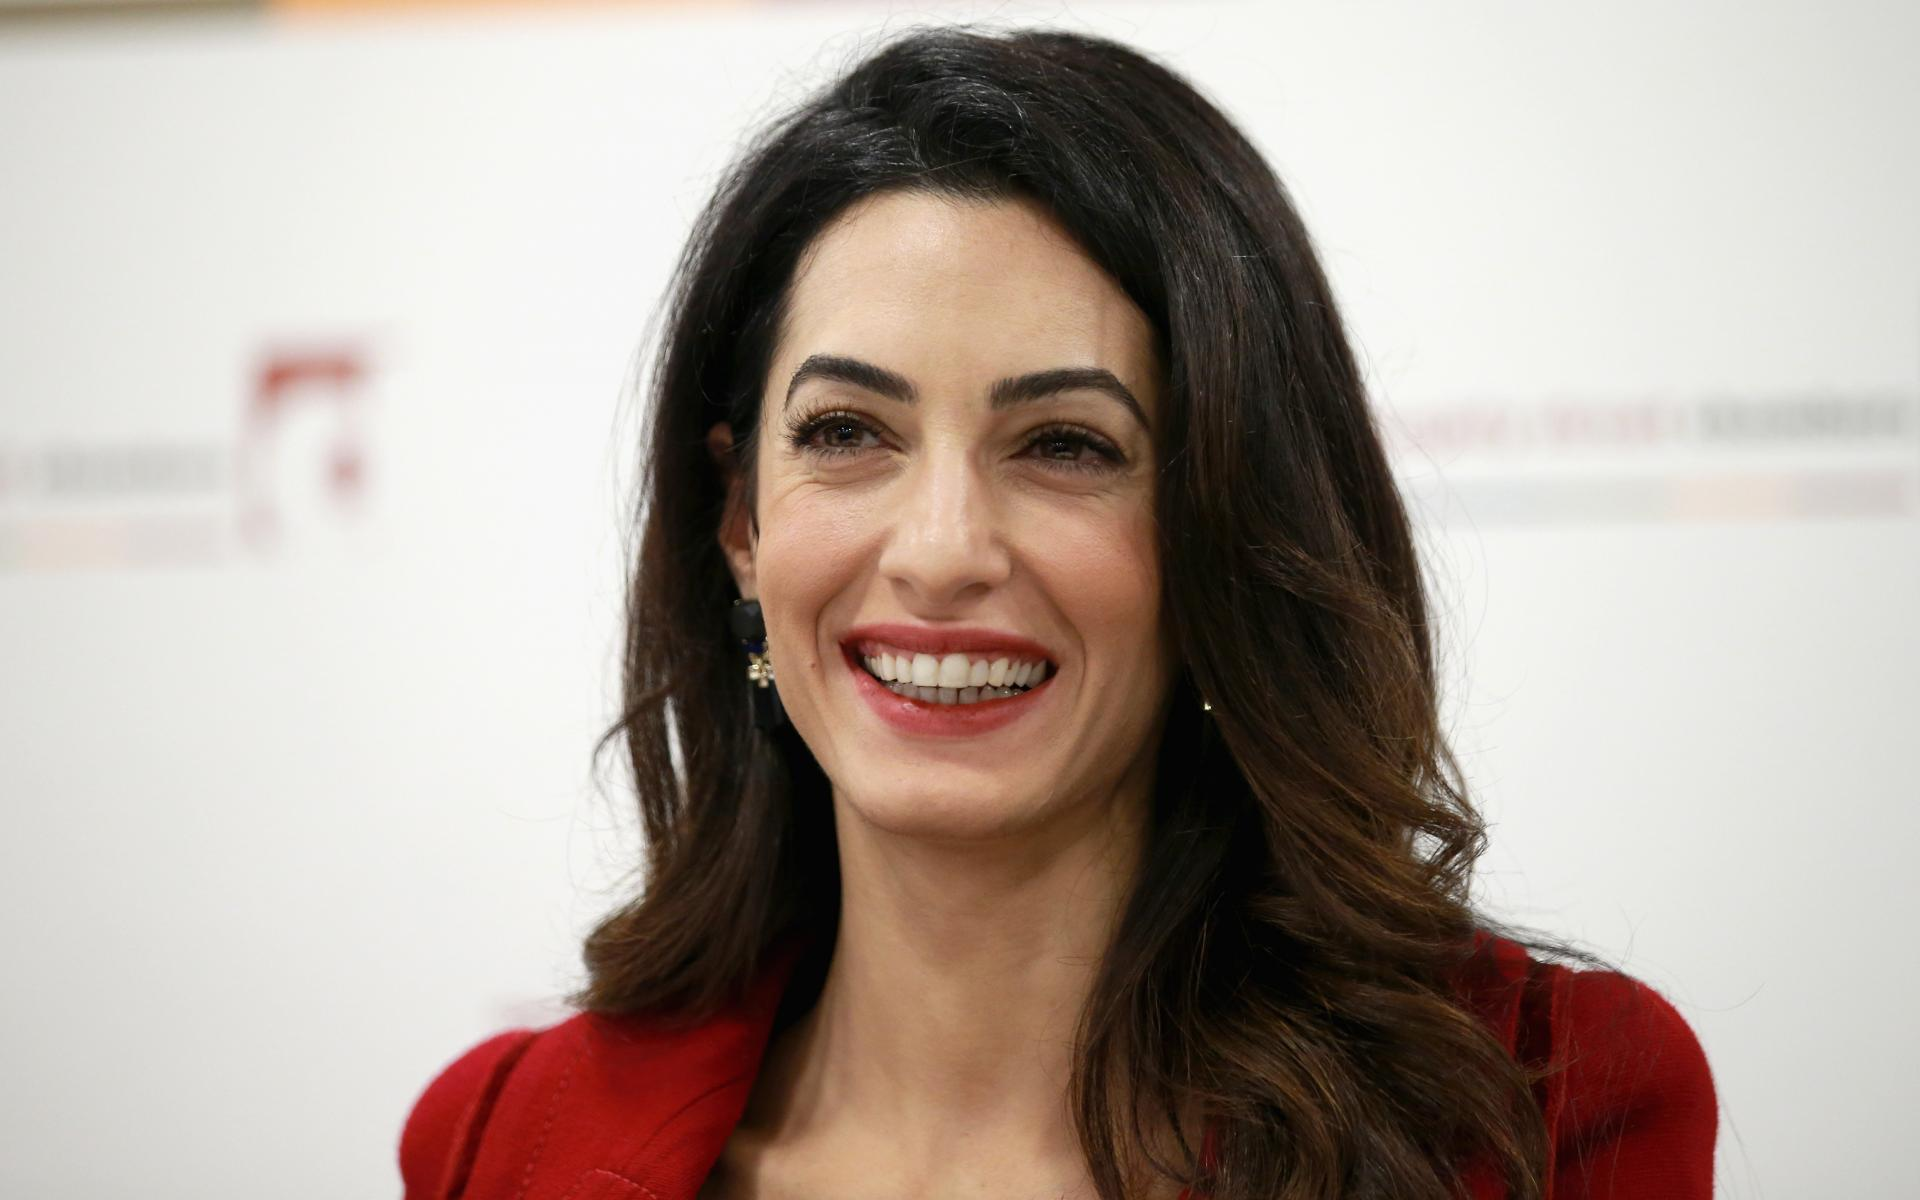 1920x1200 - Amal Clooney Wallpapers 24